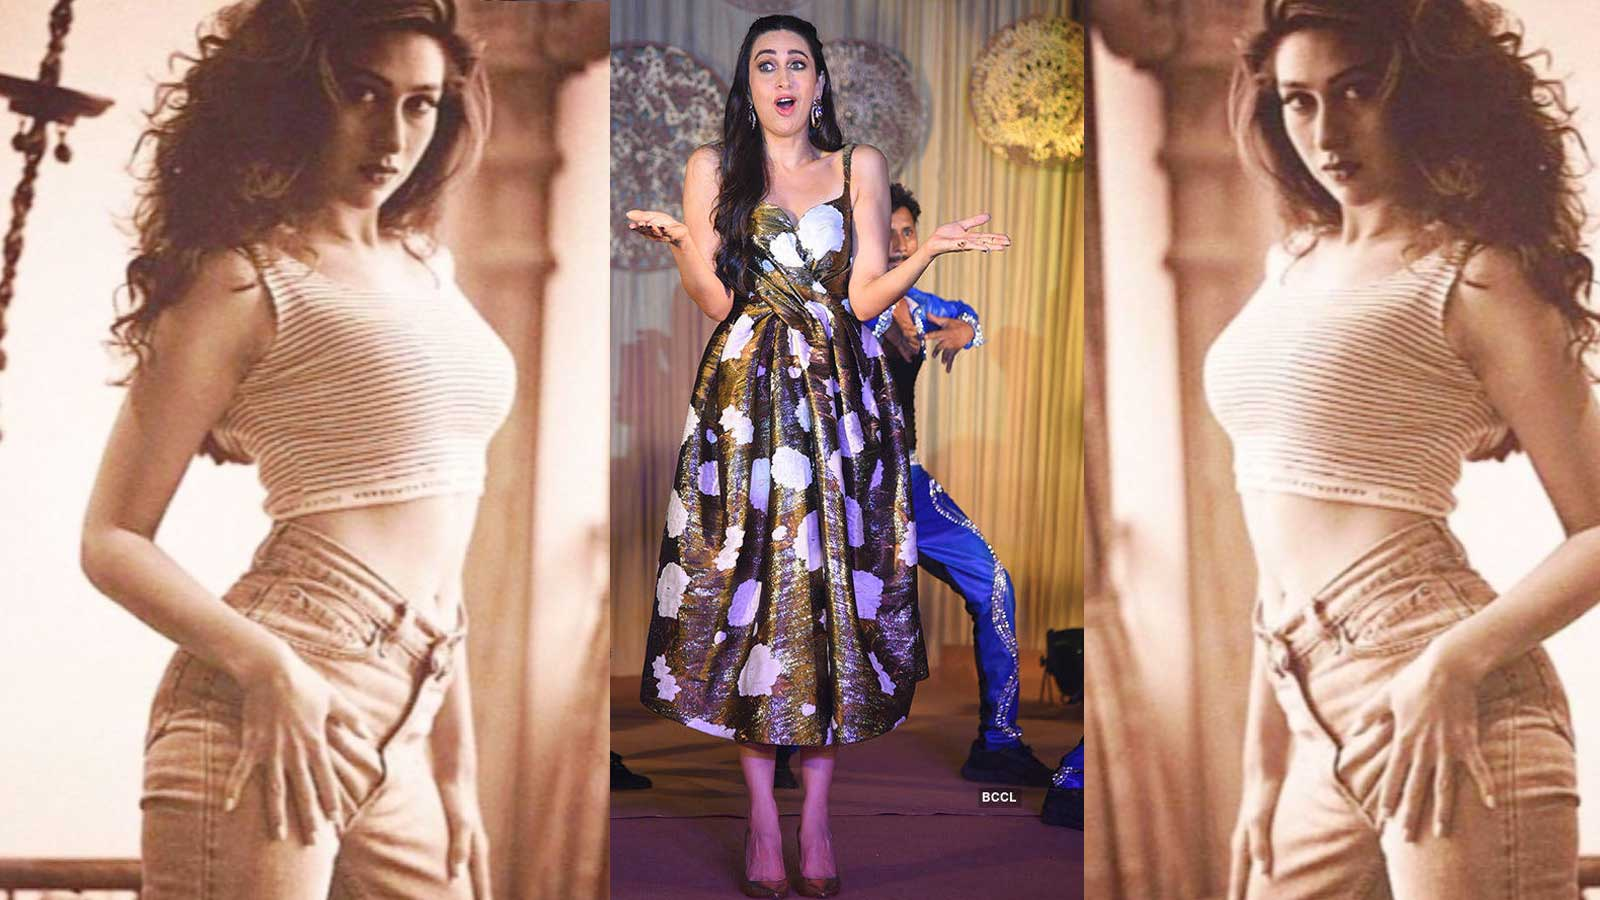 Karisma Kapoor's love for fashion is evident in this throwback picture from 90's